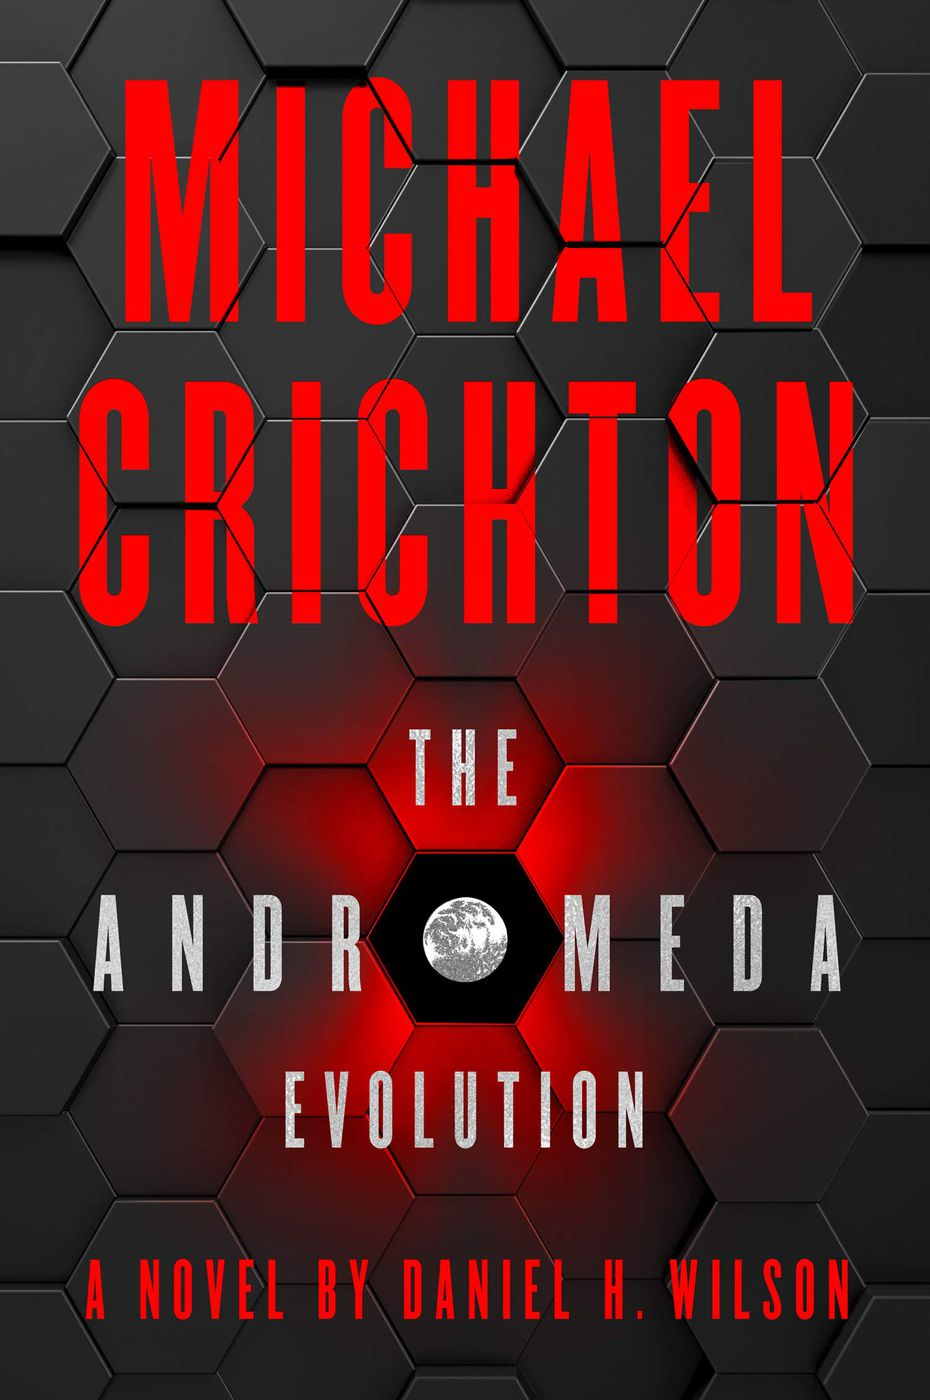 """The Andromeda Evolution"" is at least as exciting as the original novel."